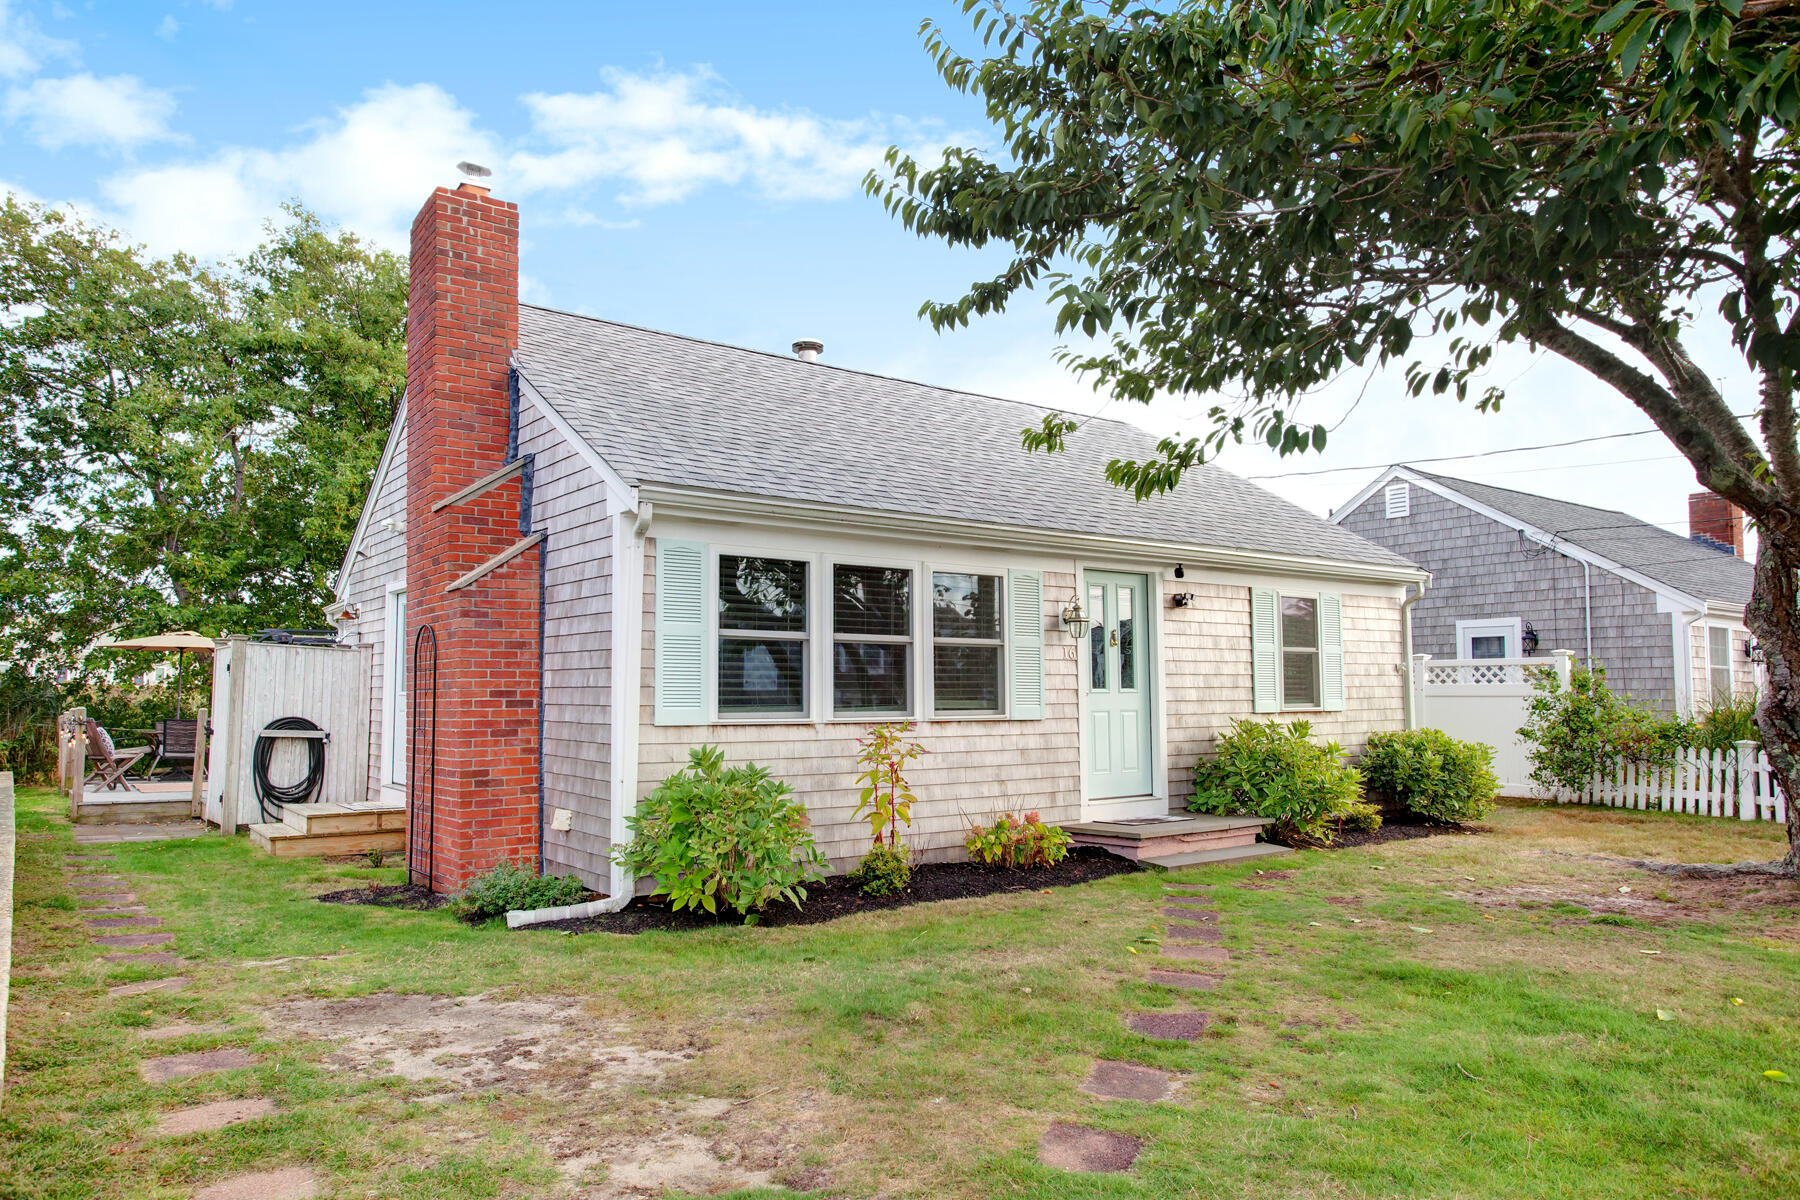 16 Vermont Avenue, West Yarmouth MA, 02673 details